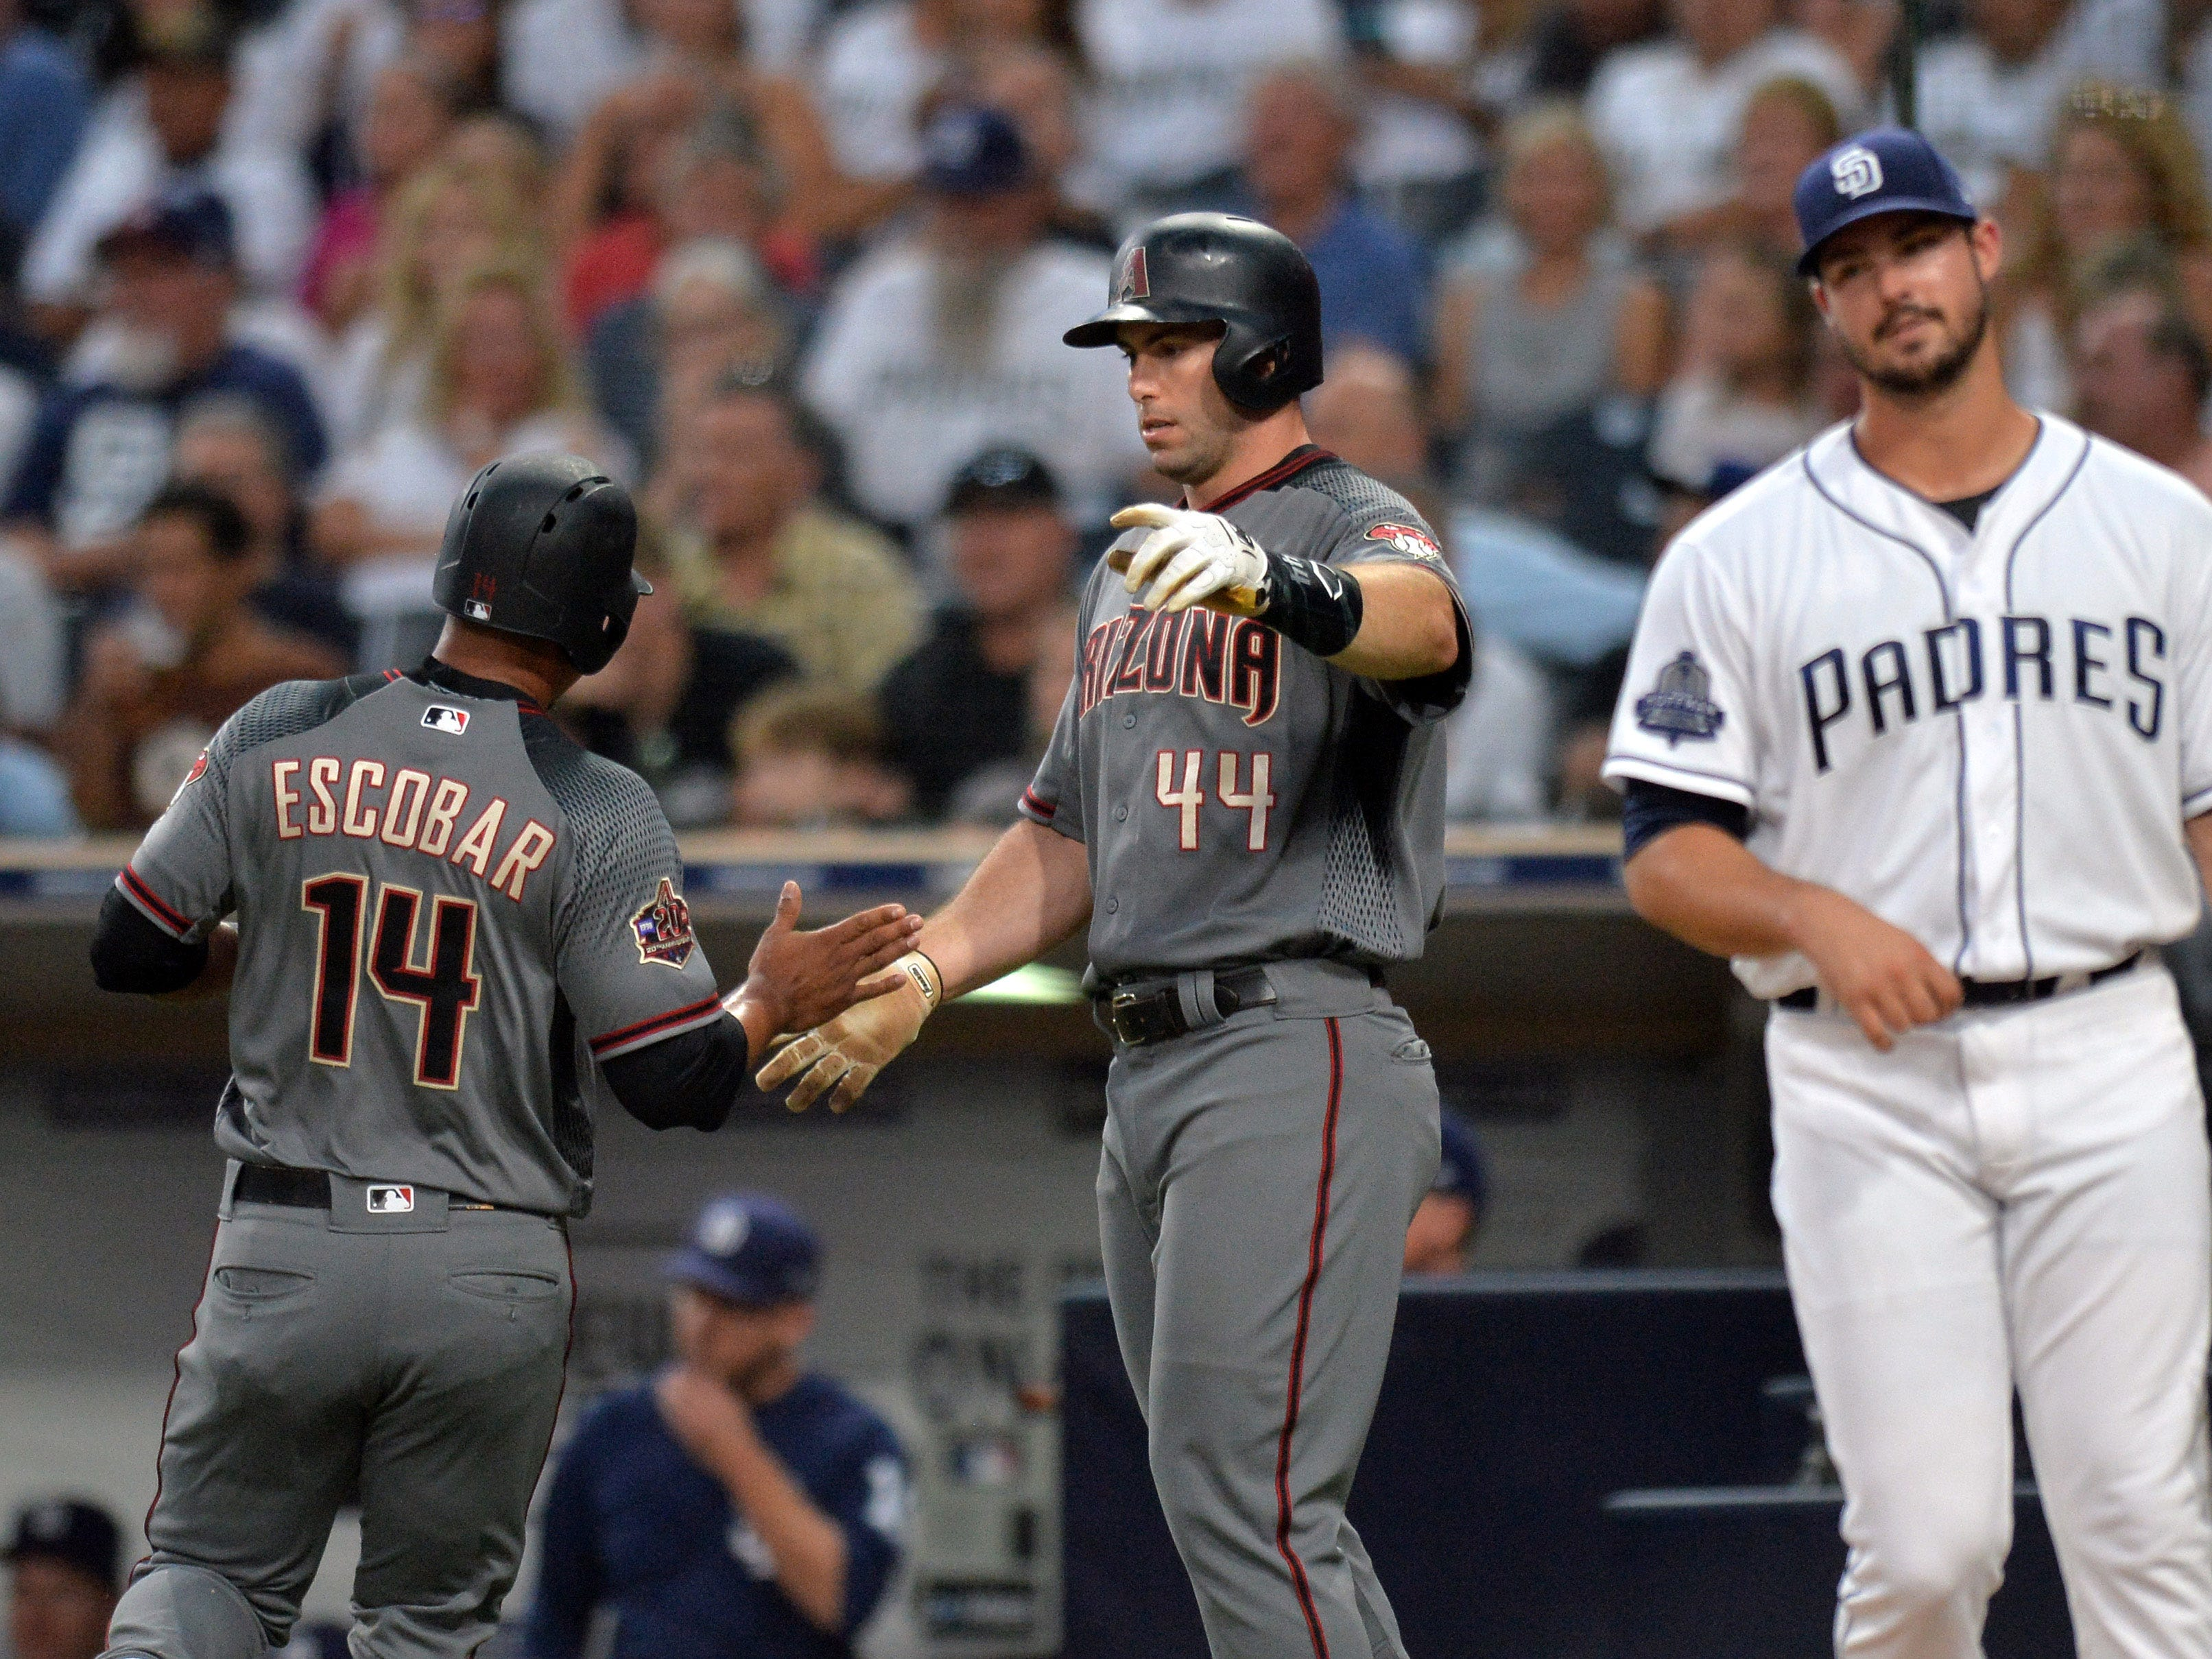 Aug 16, 2018; San Diego, CA, USA; Arizona Diamondbacks first baseman Paul Goldschmidt (44) and third baseman Eduardo Escobar (14) celebrate after scoring on a single by catcher Alex Avila (not pictured) during the first inning as San Diego Padres starting pitcher Jacob Nix (right) reacts at Petco Park.